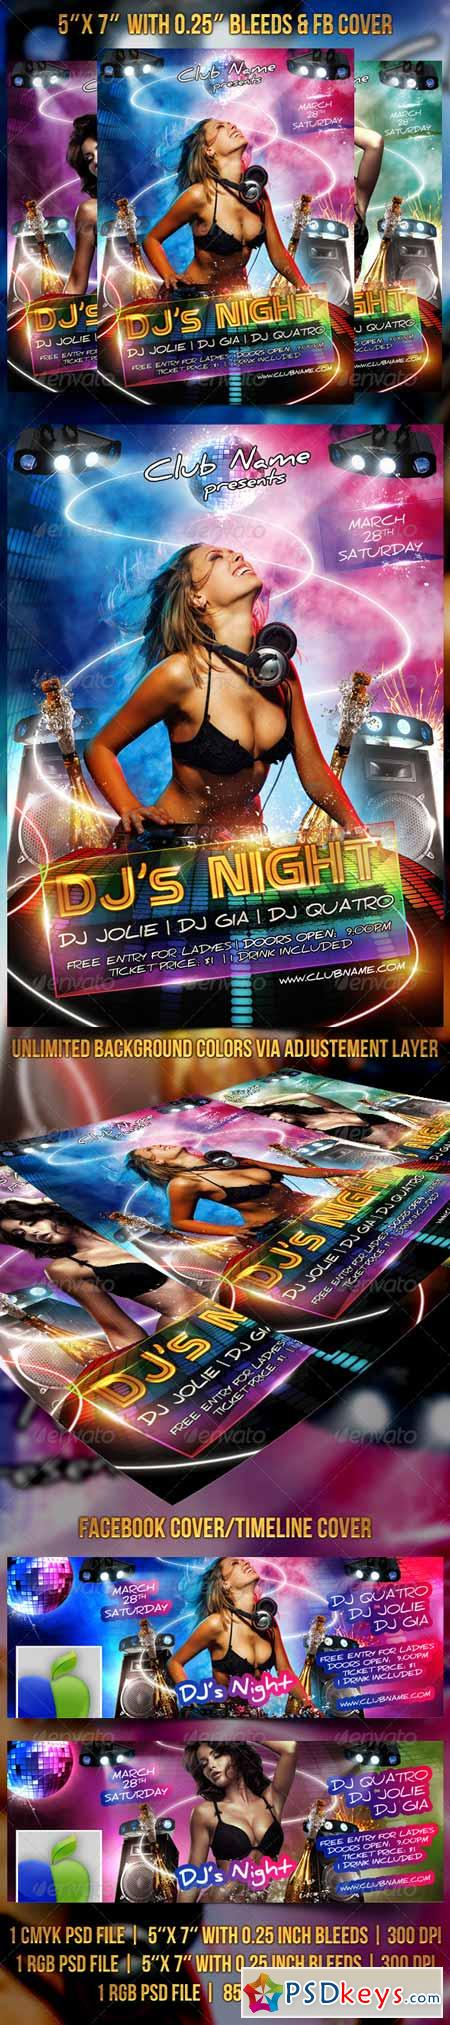 DJ's Night Flyer FB Cover 6897070